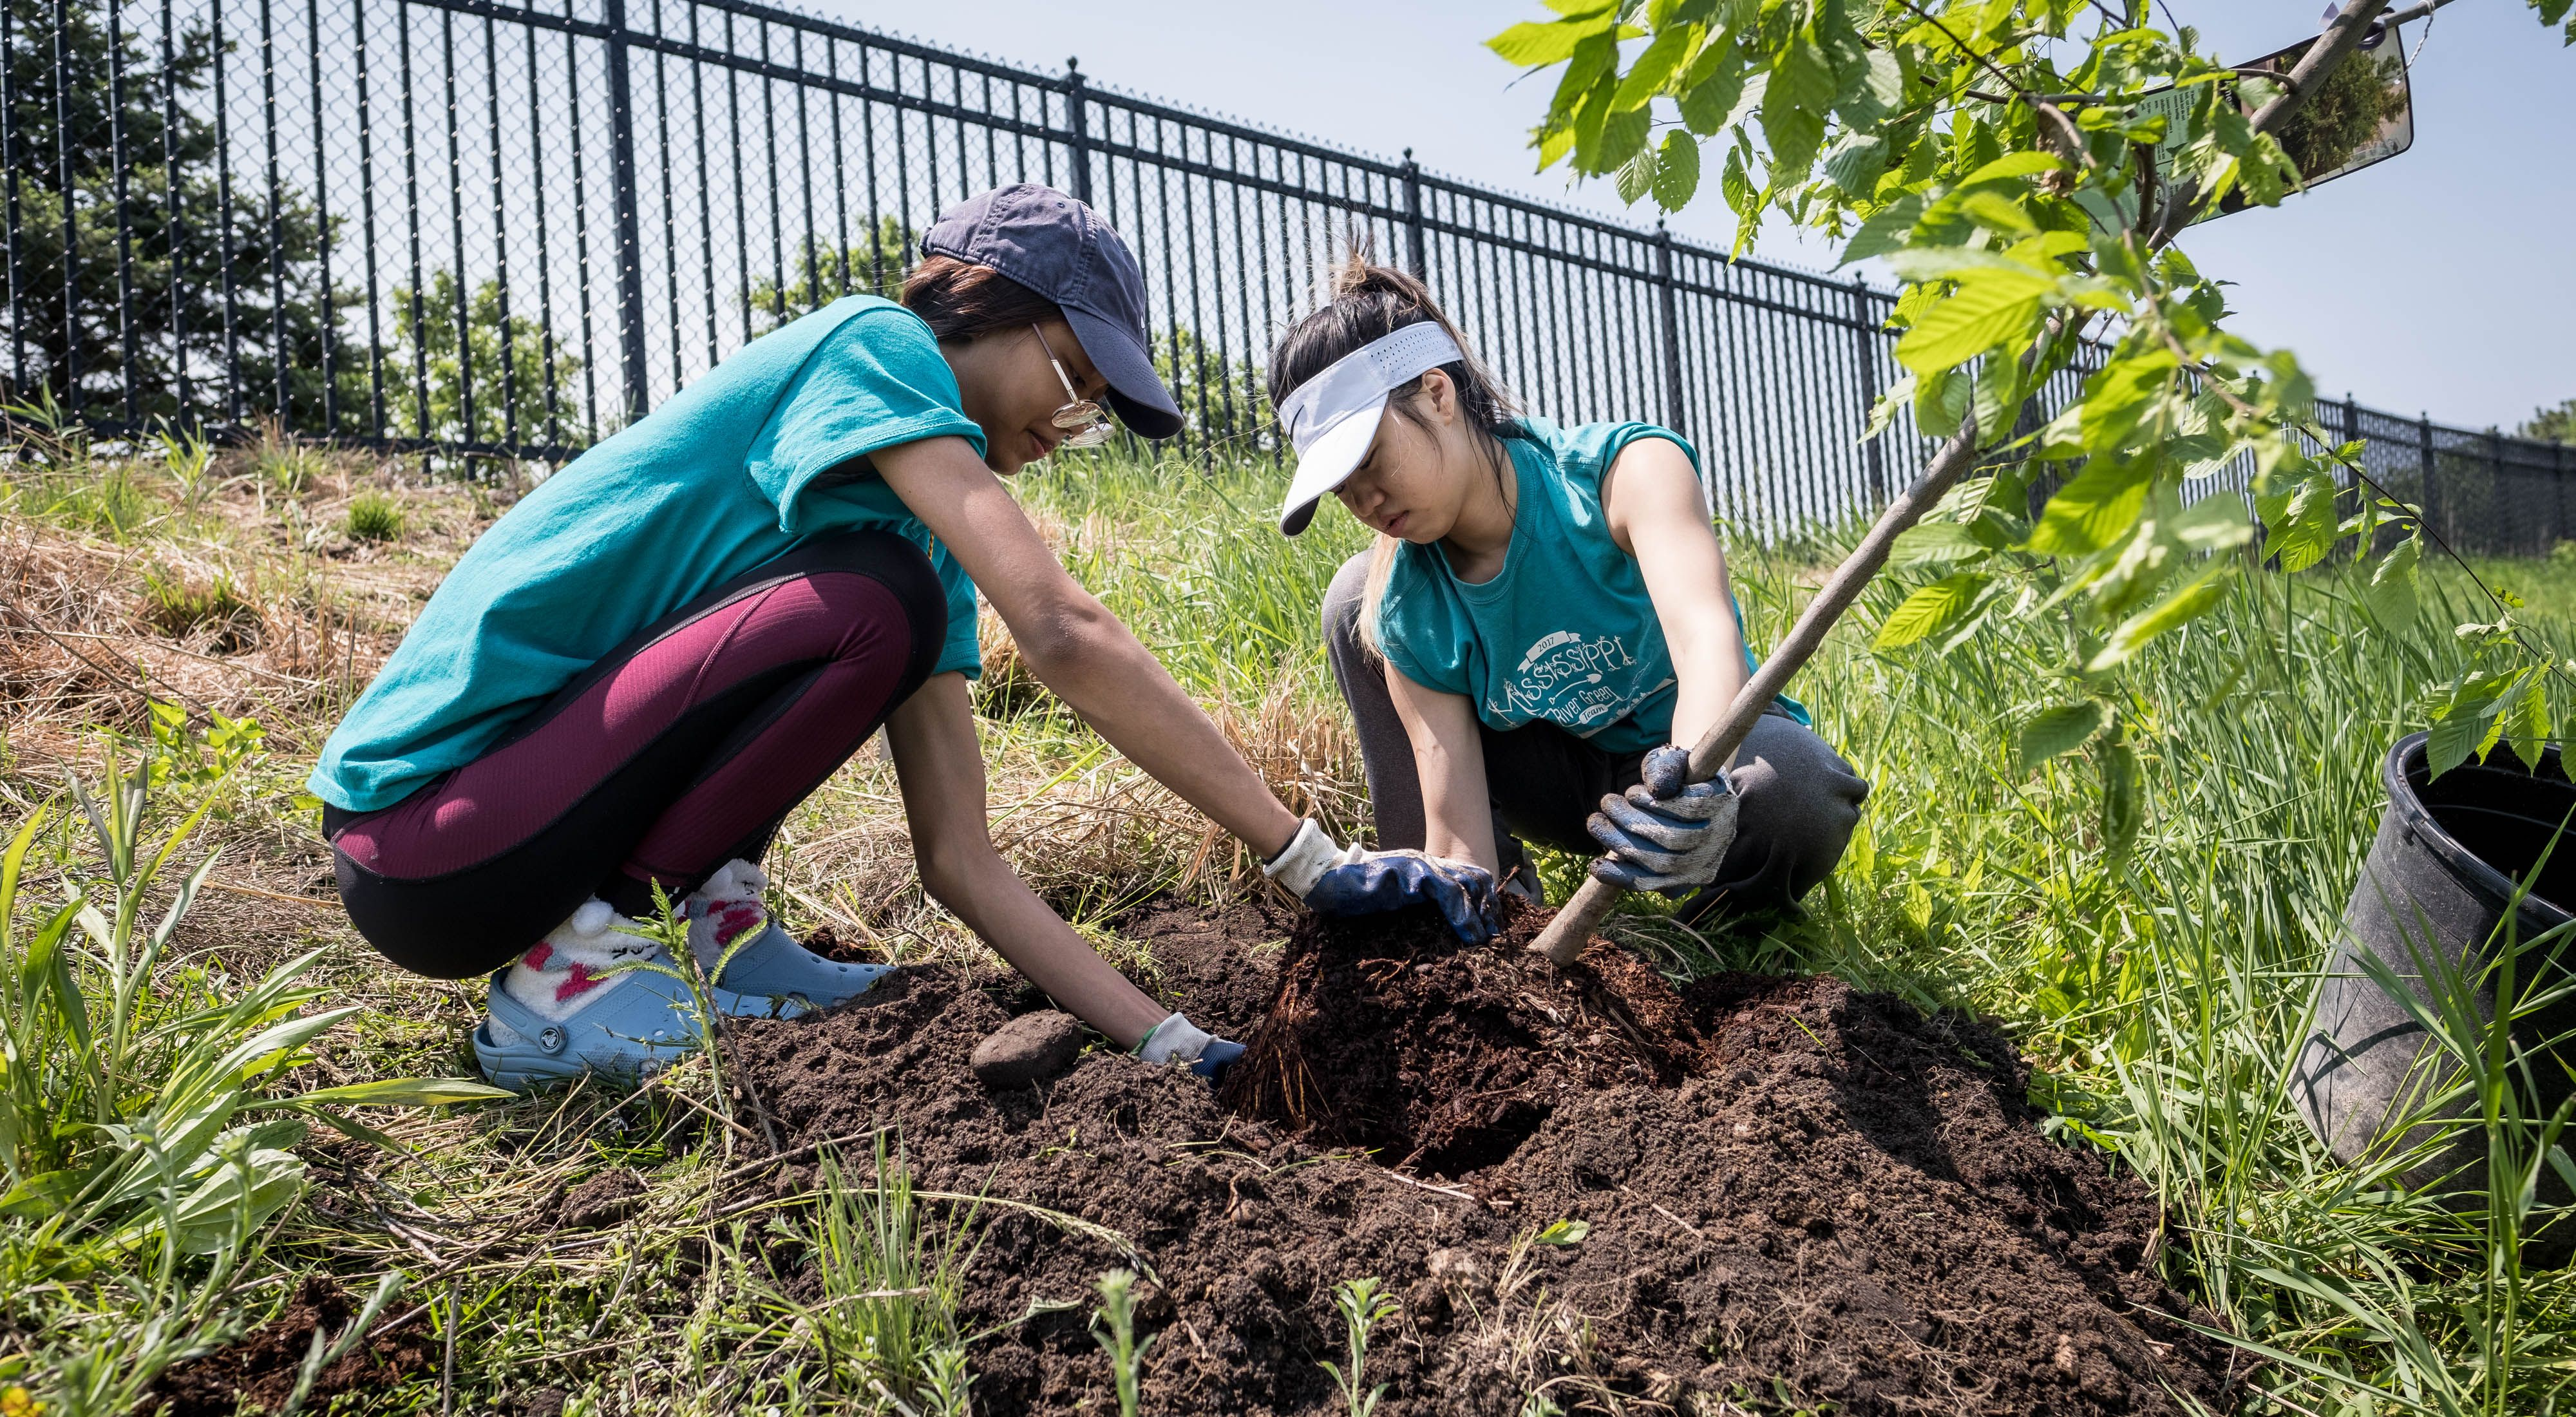 in north Minneapolis, organized by The Nature Conservancy and partners